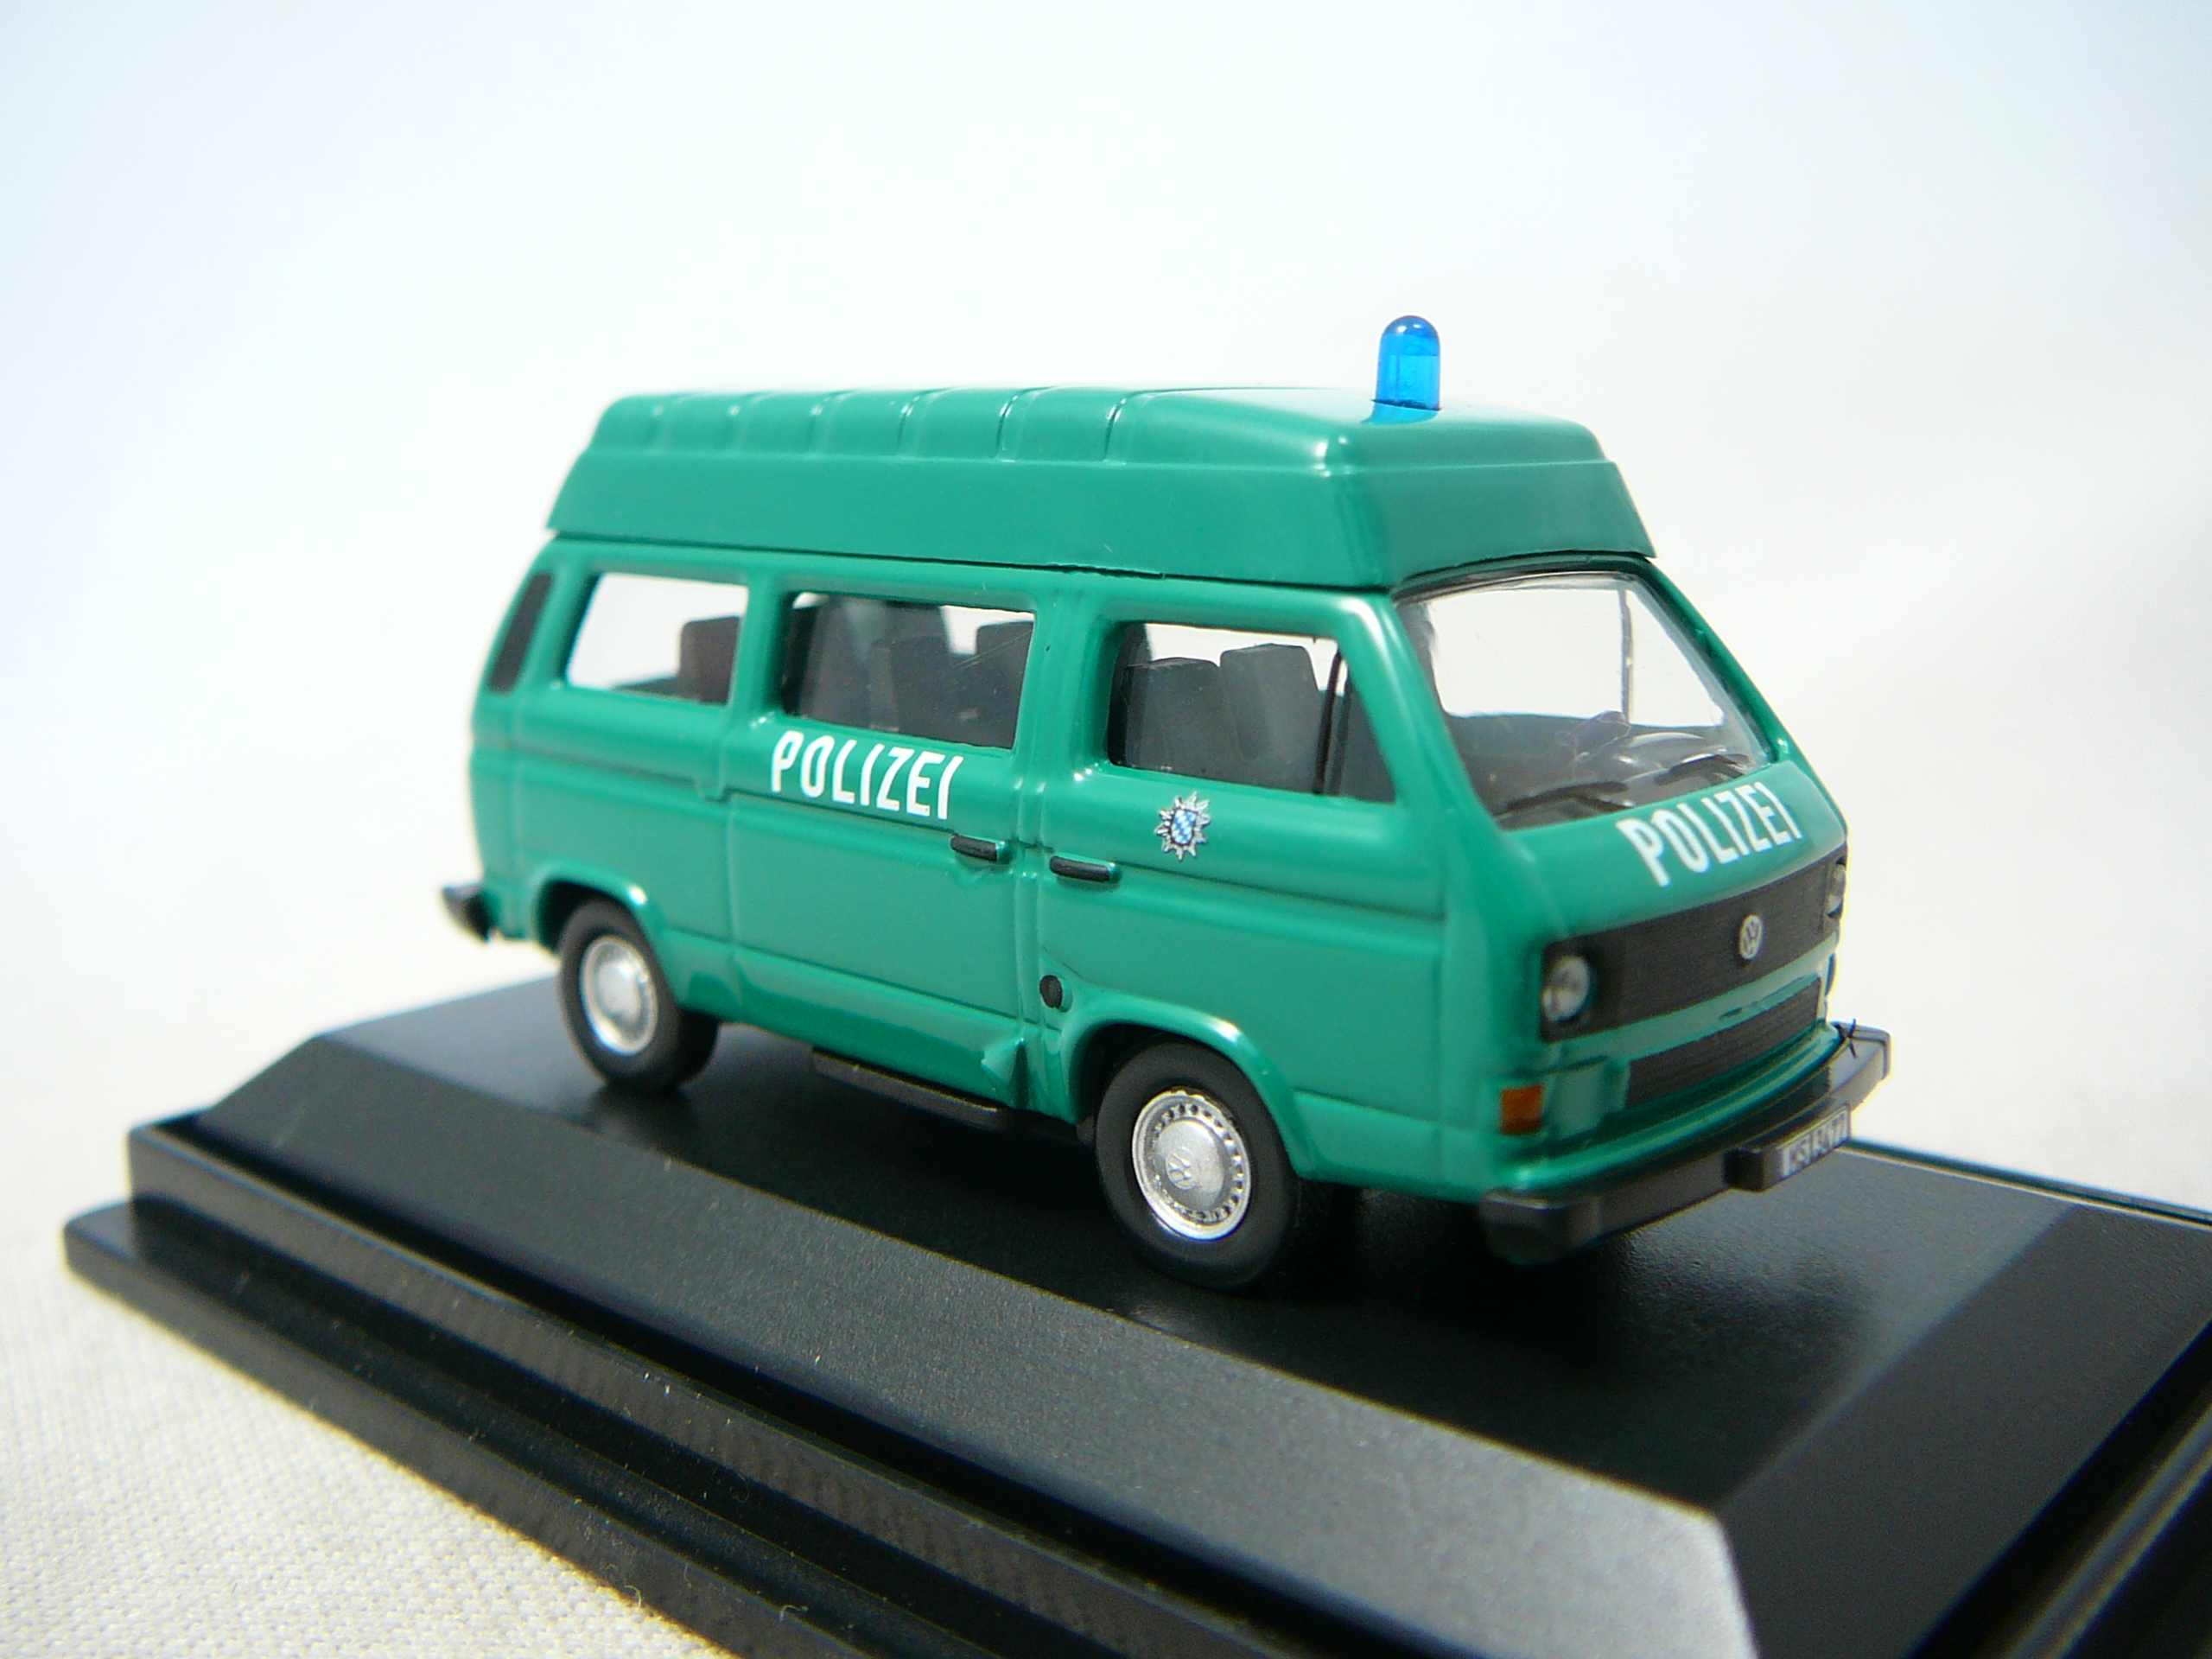 volkswagen t3 bus polizei miniature 1 87 schuco sc 25784 freeway01 voitures miniatures de. Black Bedroom Furniture Sets. Home Design Ideas